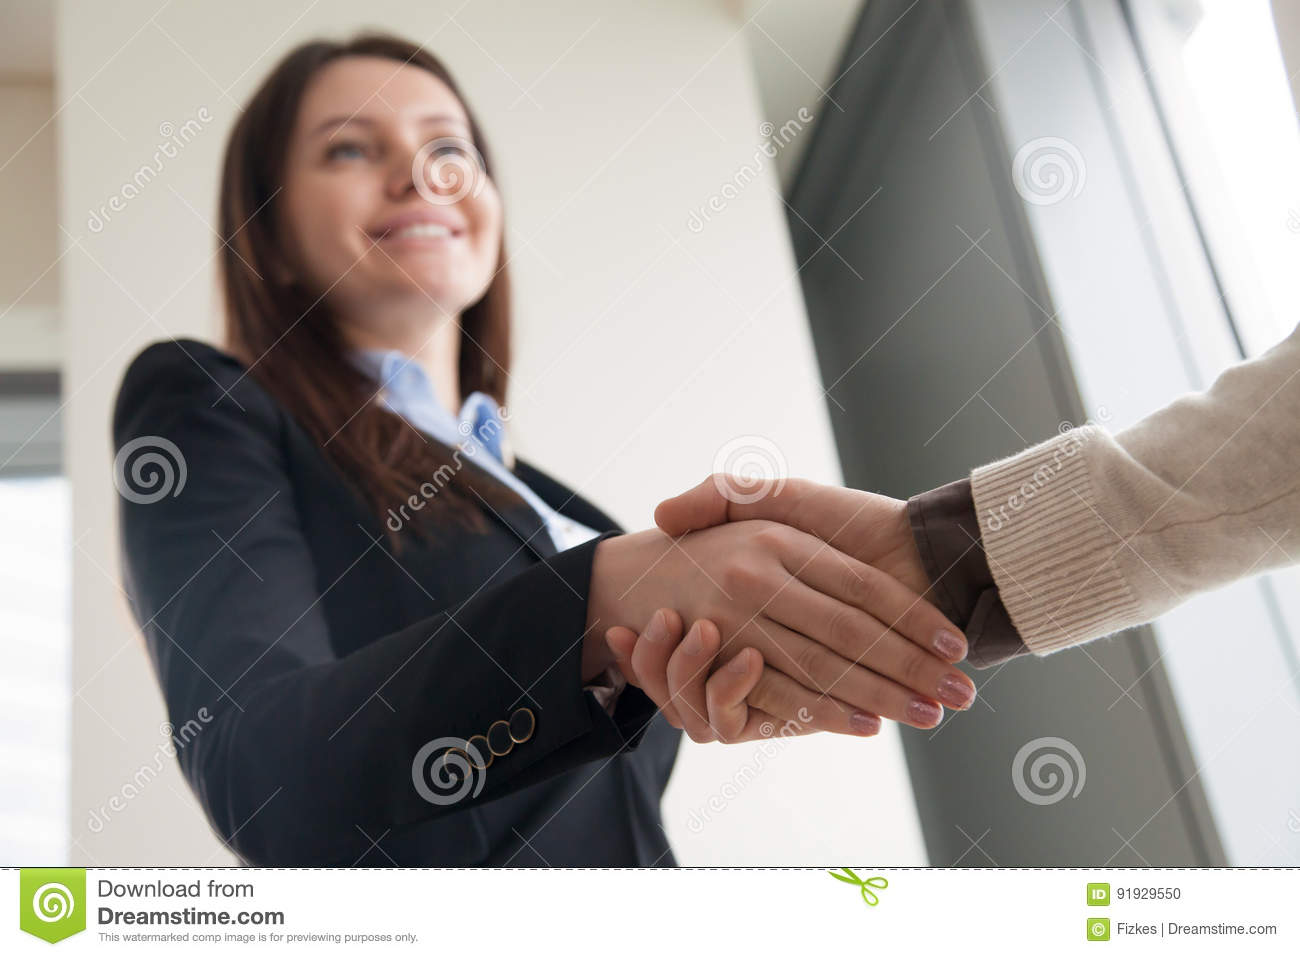 Attractive welcoming businesswoman shaking male hand and smiling